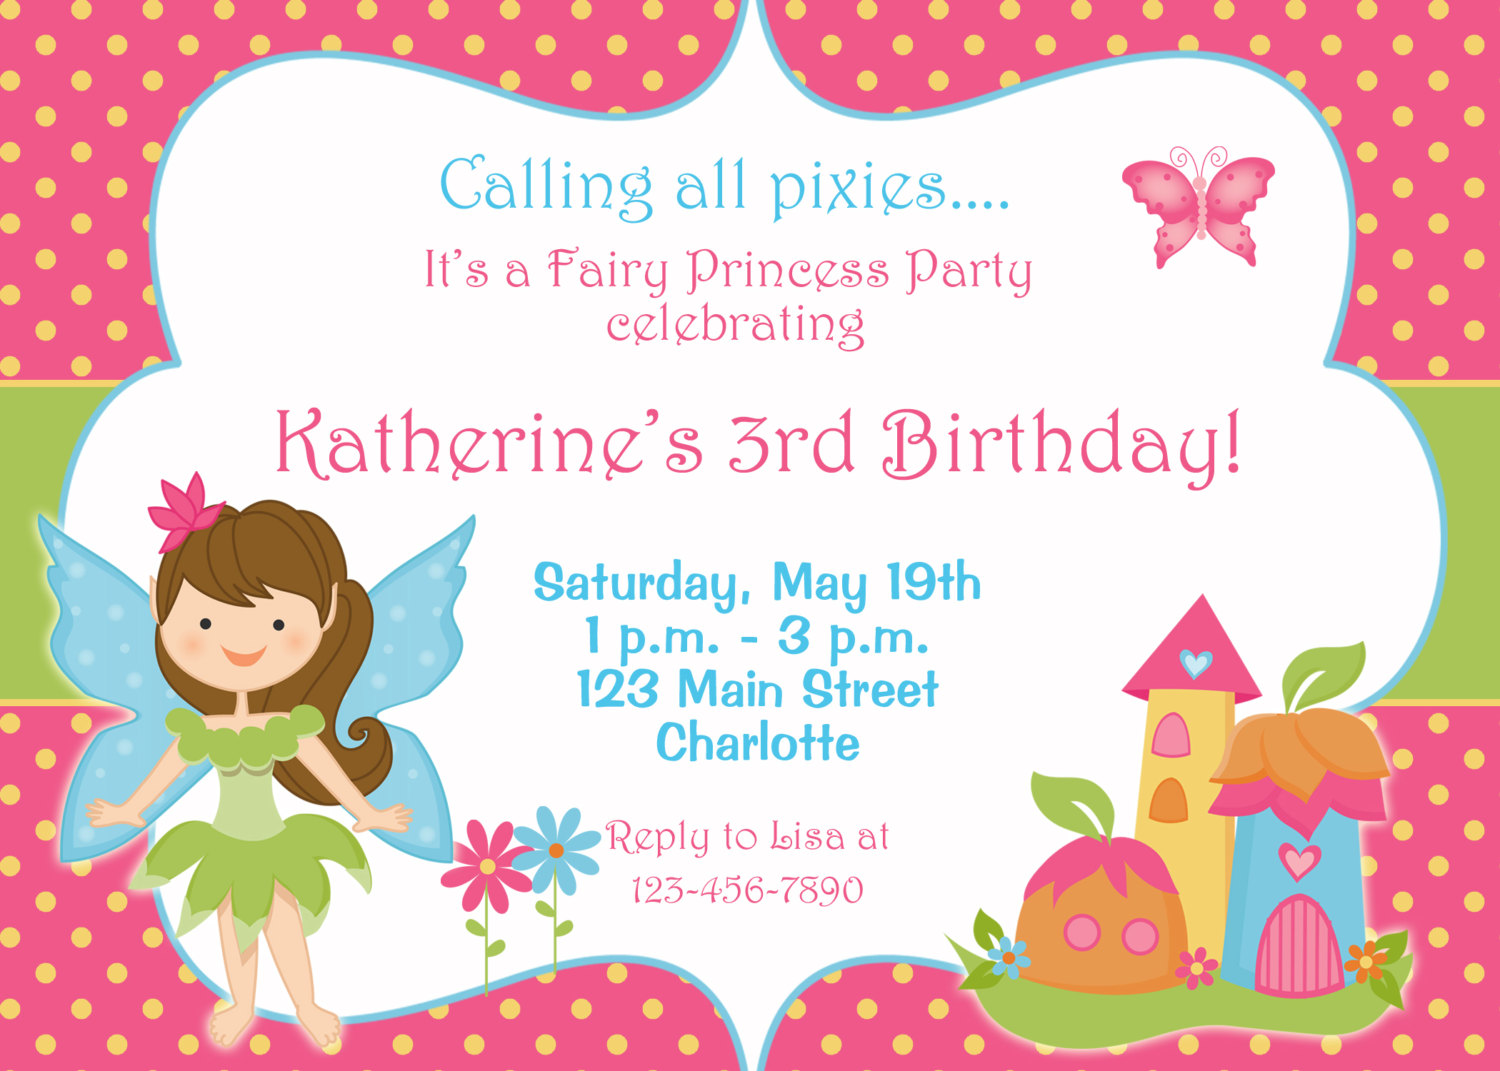 fairy themed birthday invitation ; fairy-birthday-invitations-to-inspire-you-how-to-create-the-Birthday-invitation-with-the-best-way-1